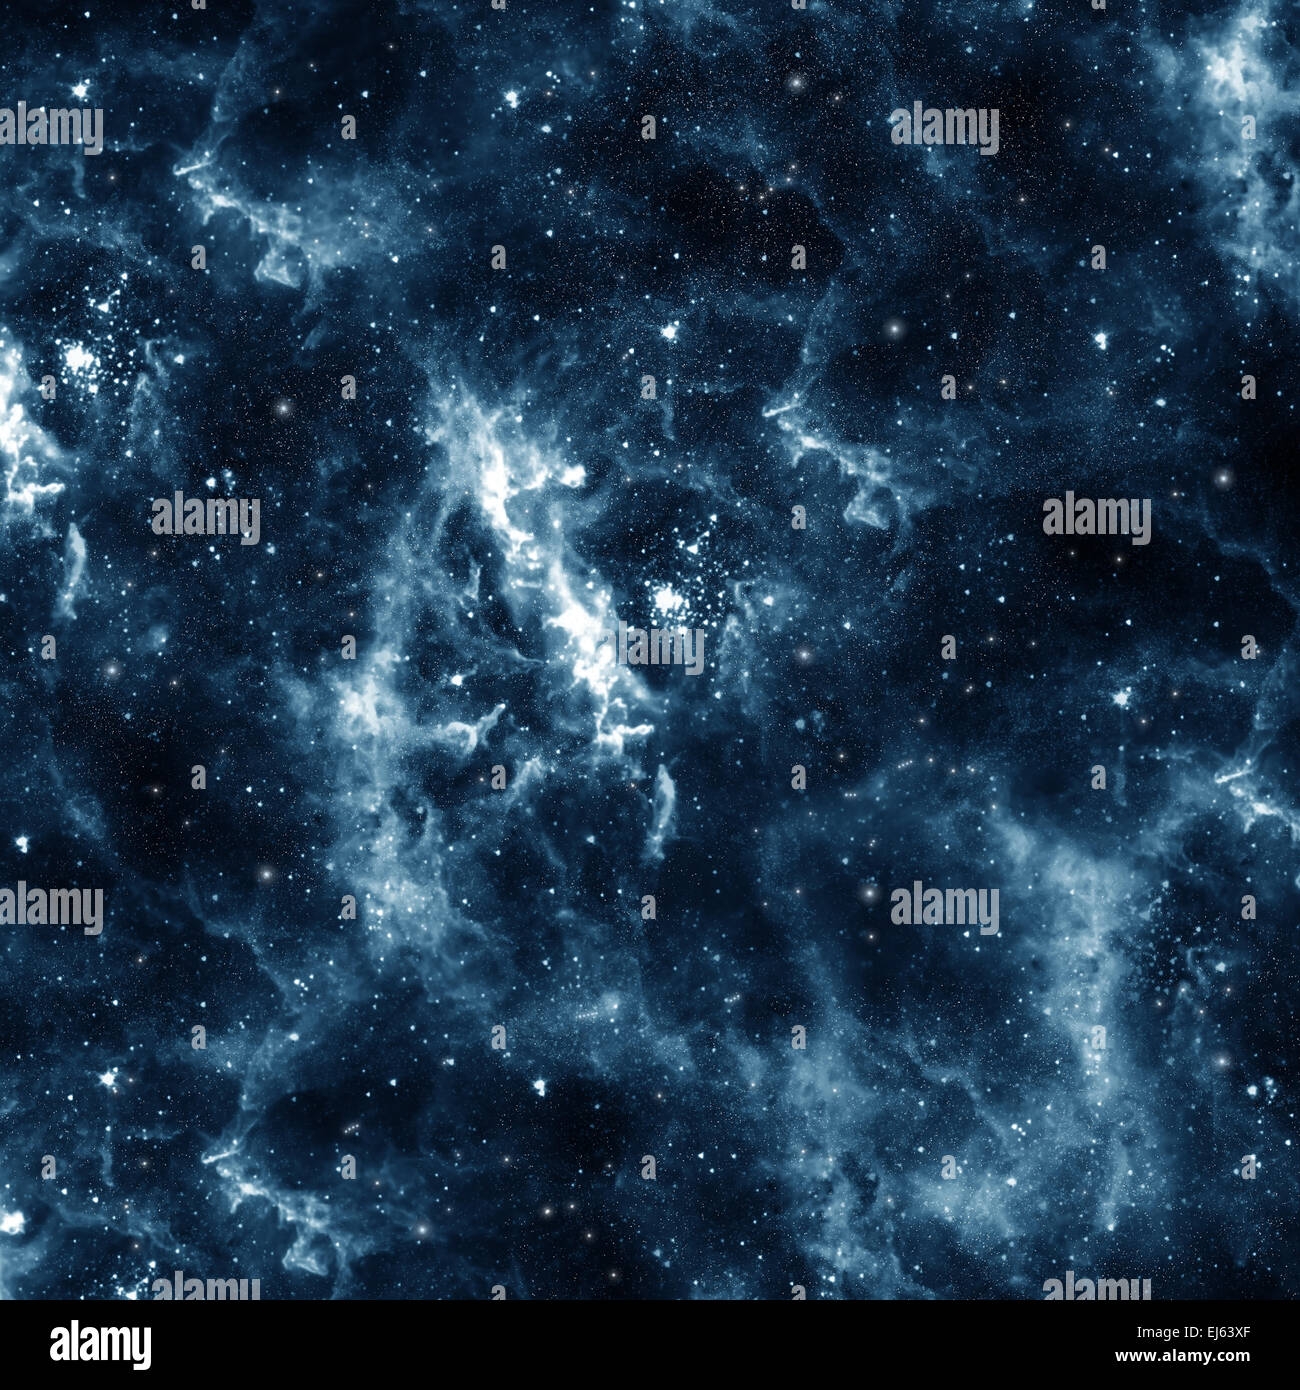 Blue galaxy - Stock Image